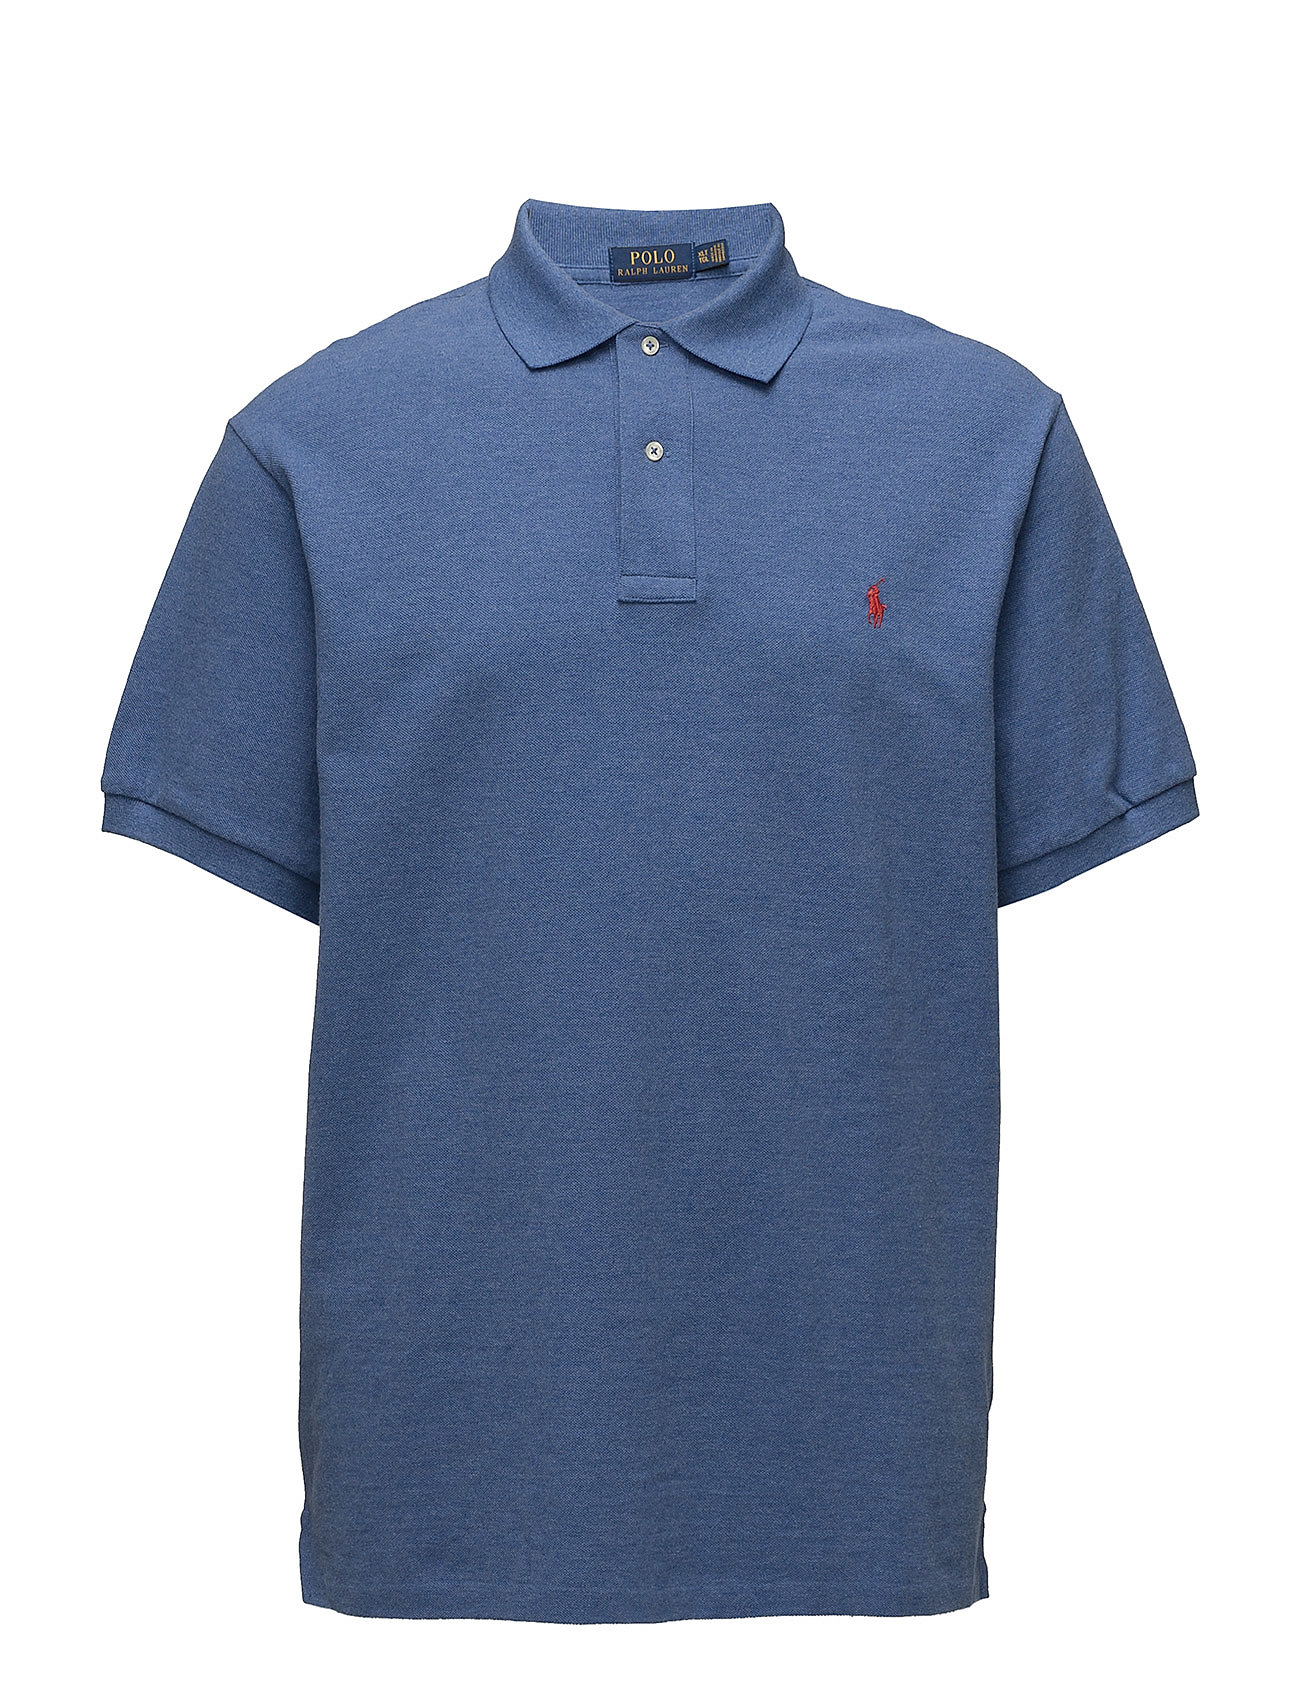 Classic fit mesh polo shirt deco blue heather for Tall ralph lauren polo shirts